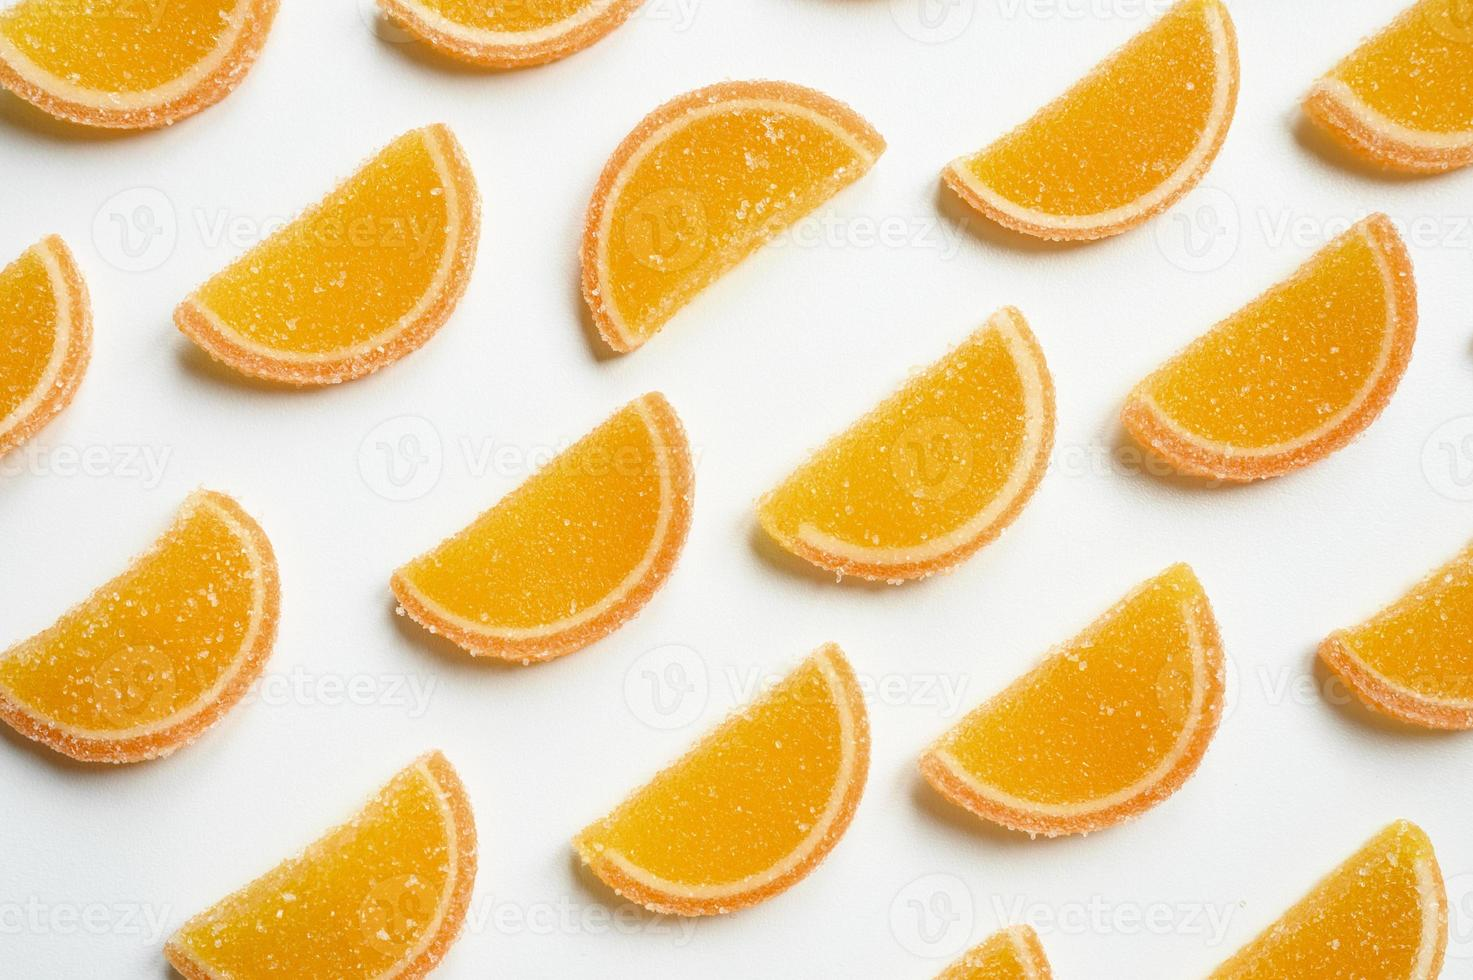 Marmalade slices of oranges isolated on a white background photo